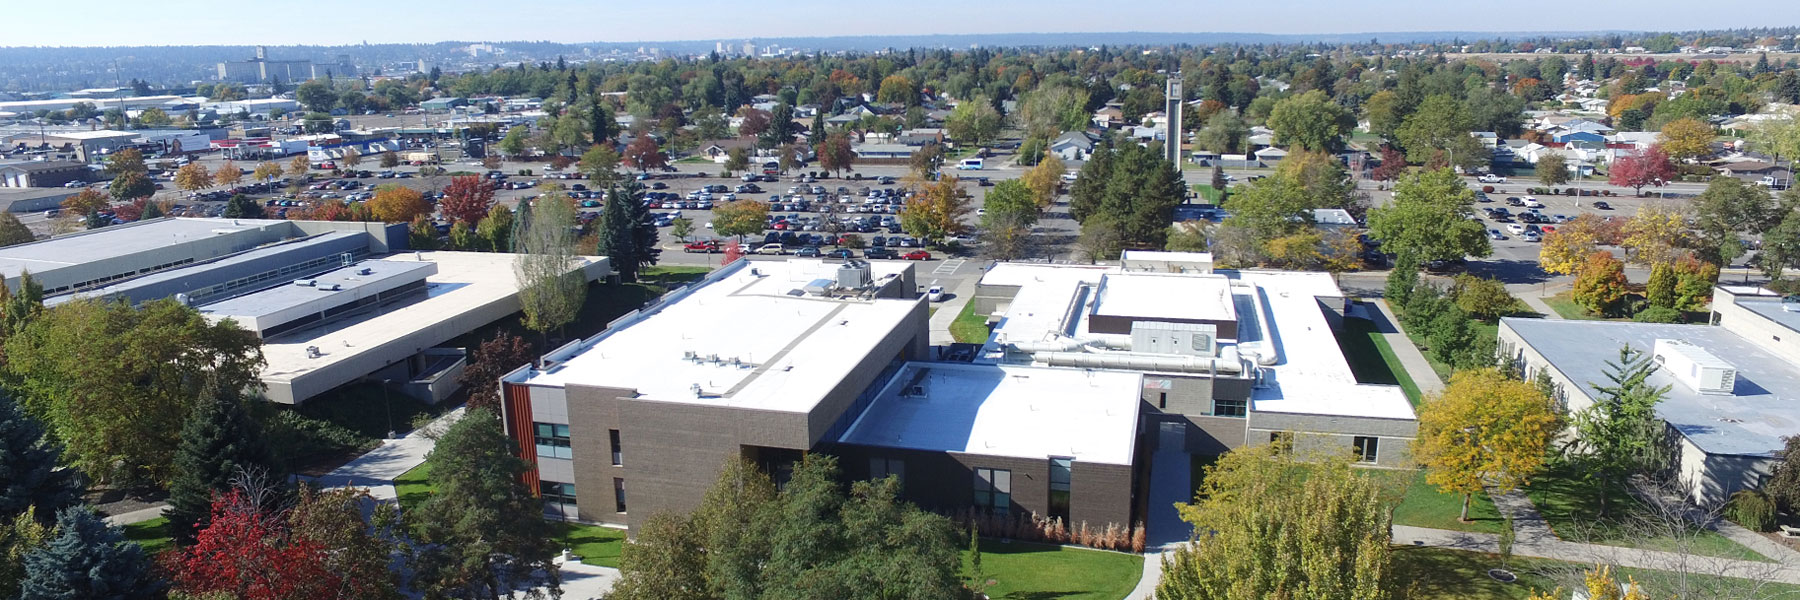 Aerial view showing part of the west side of the campus